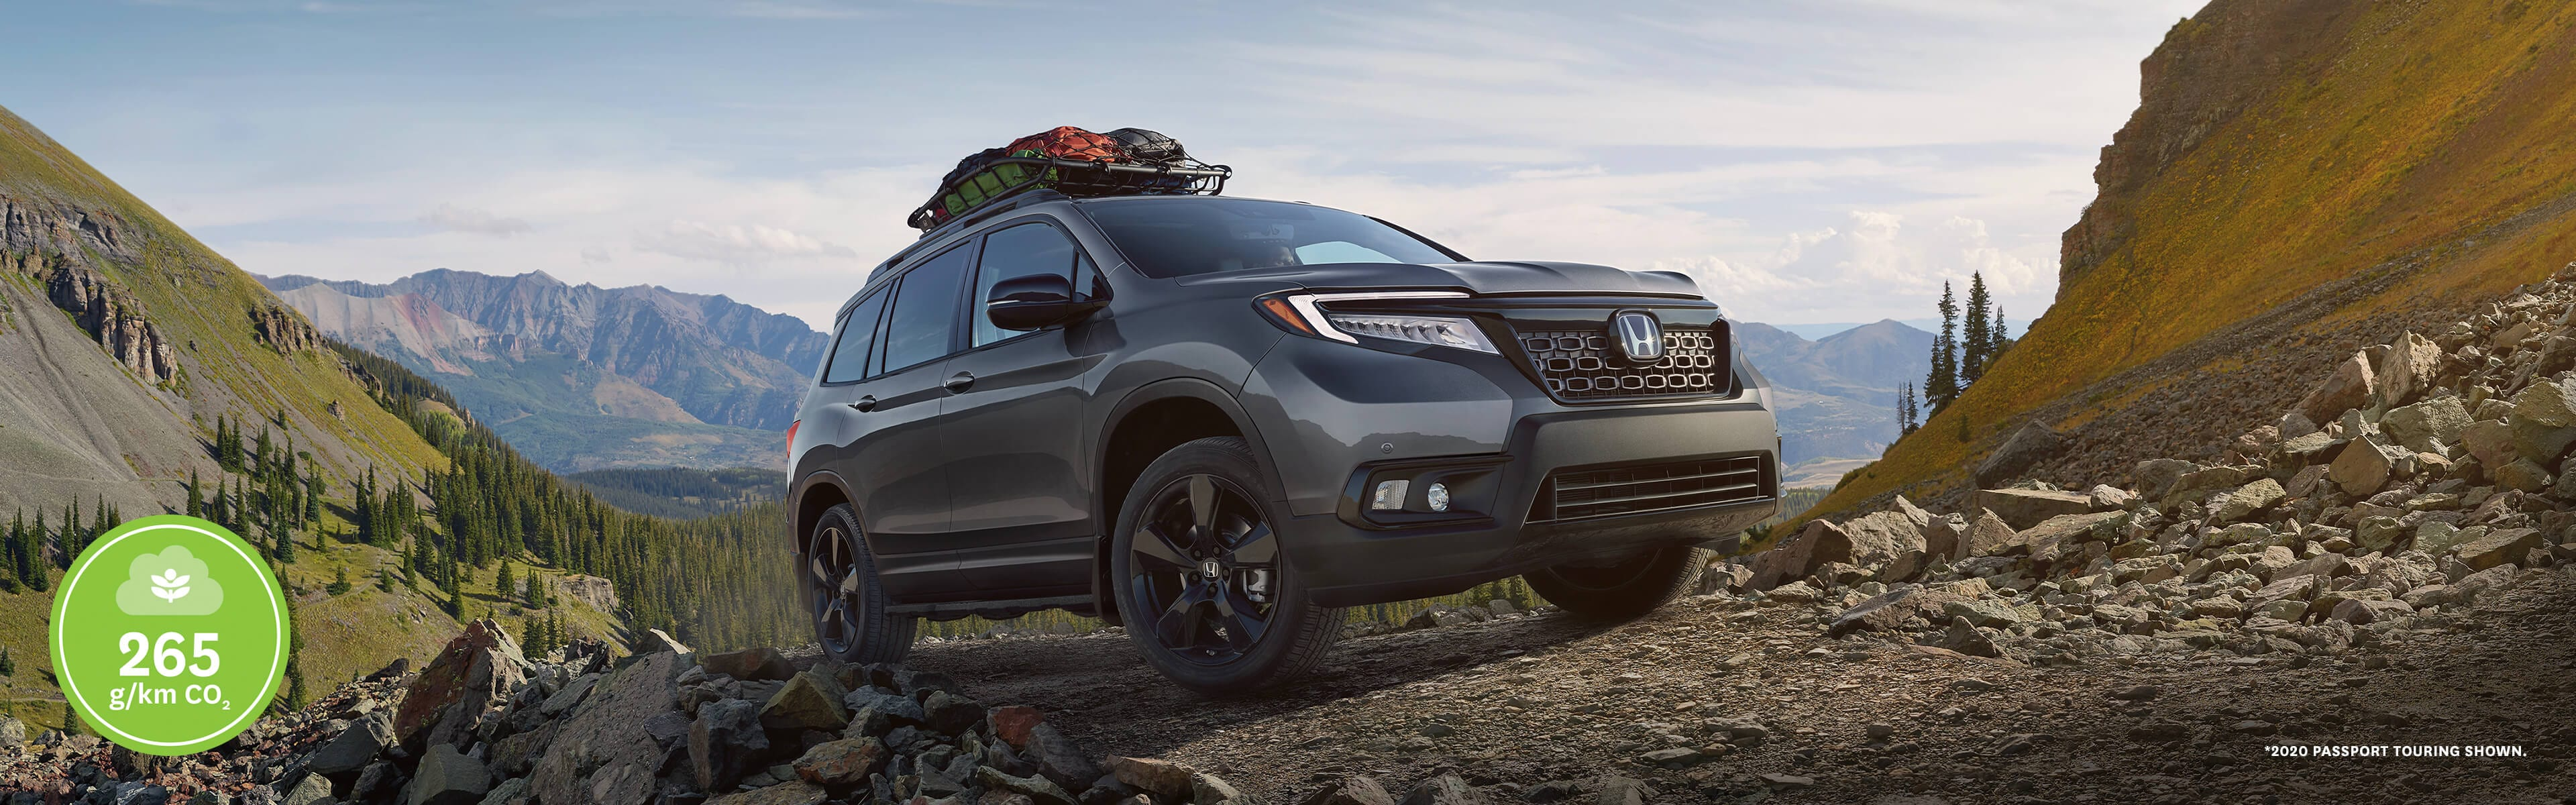 2020 Honda Passport parked on rocks in a forest mountain area